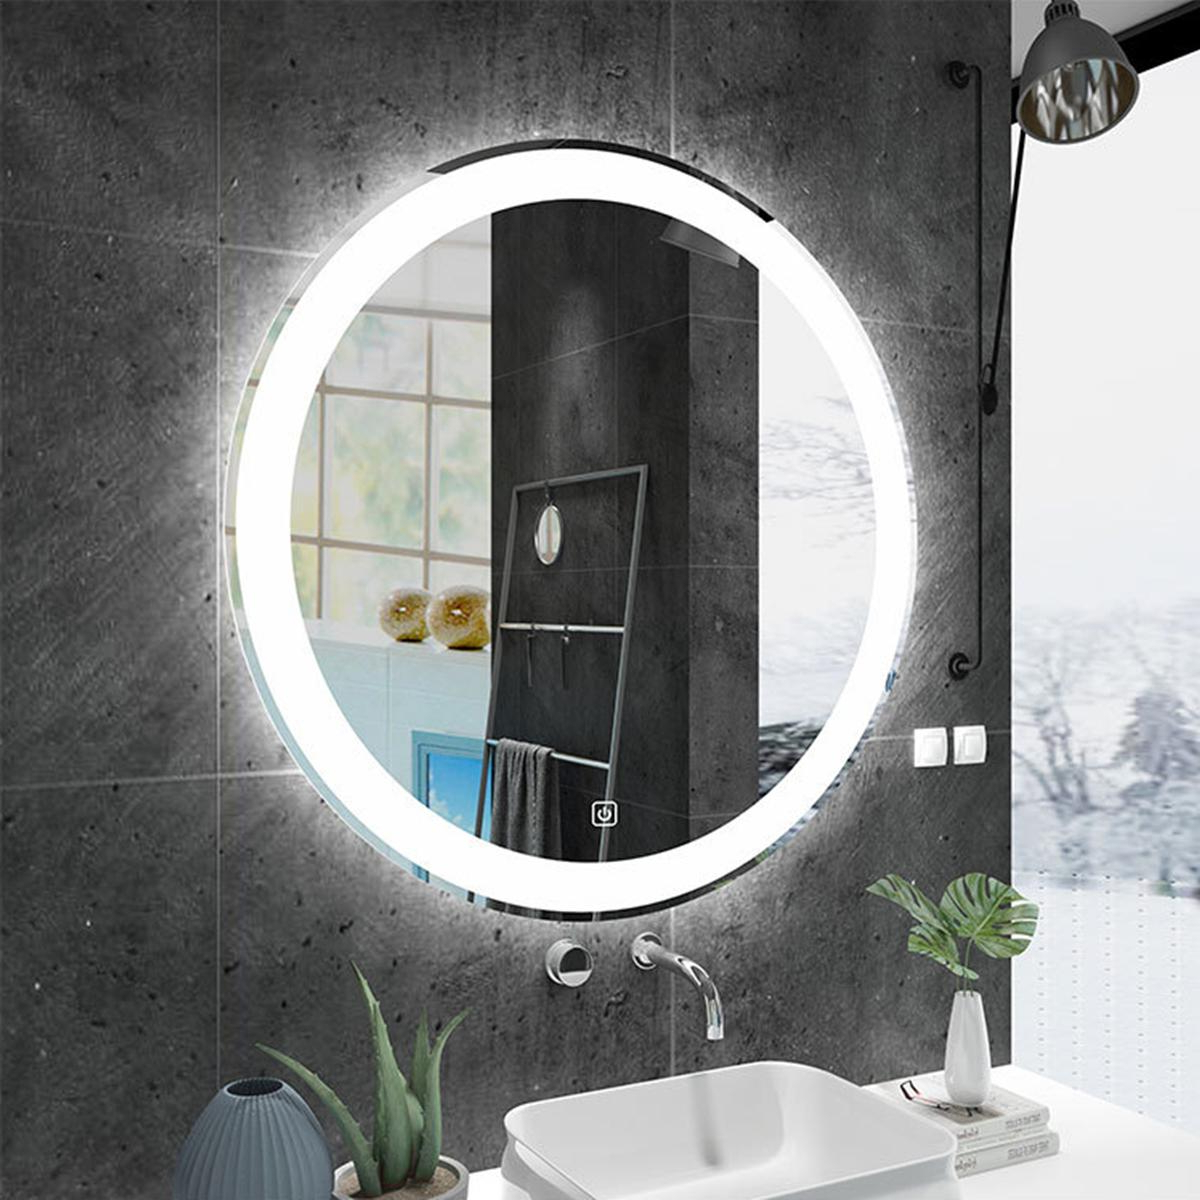 Famous Large Lighted Bathroom Wall Mirrors With 60cm Large Round Bathroom Wall Mount Mirror Cabinet Led Illuminated Anti Fogging (View 15 of 20)